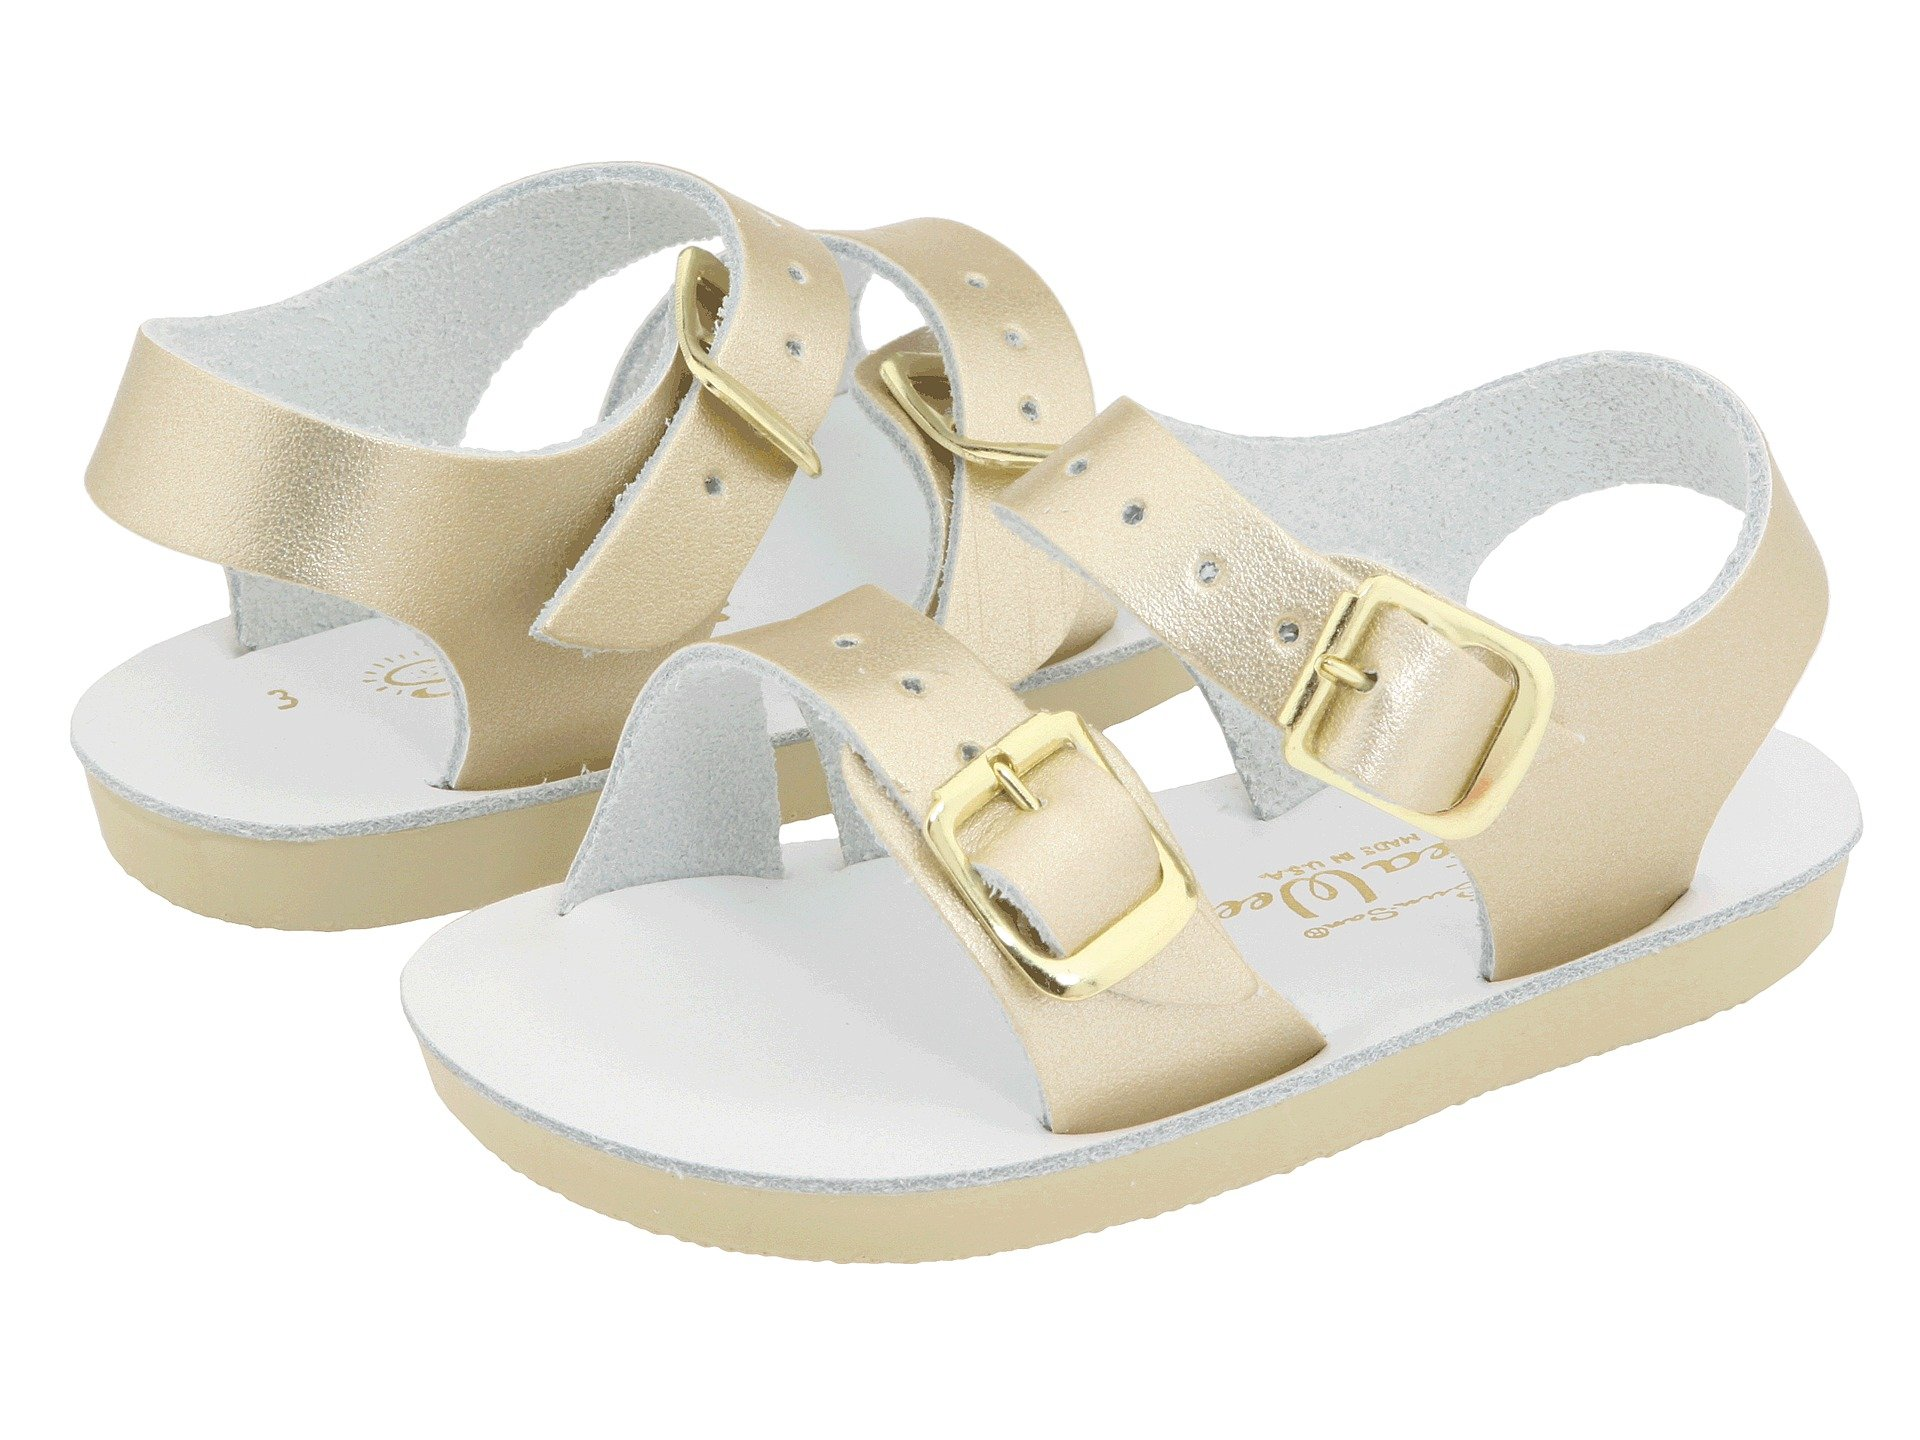 9792816516be Sun San Sea Wees in Gold